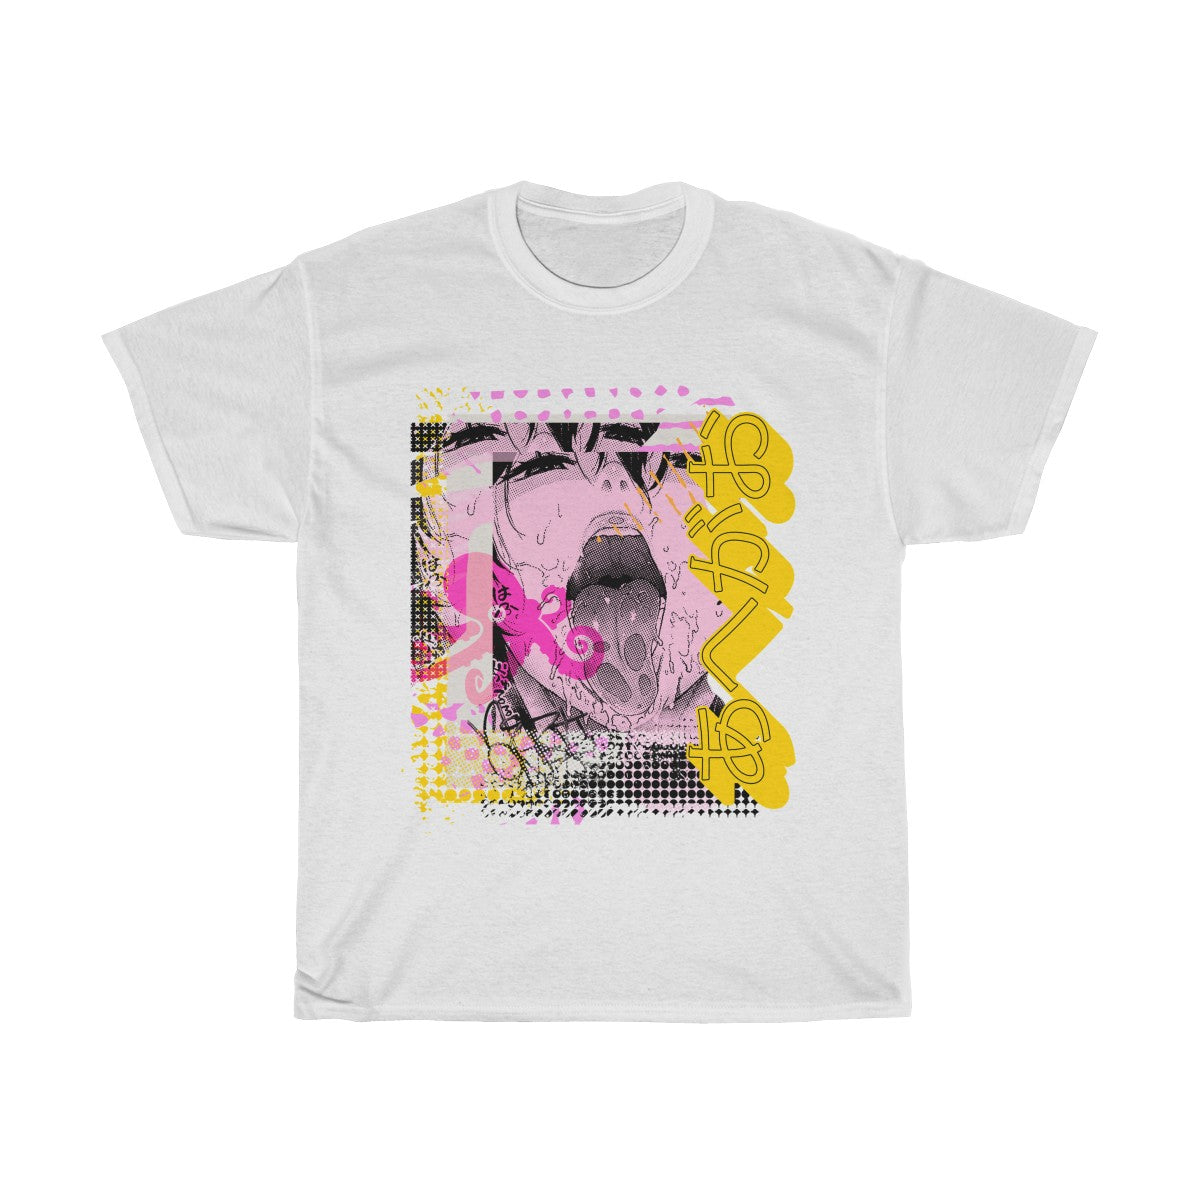 Ahegao Face - Anime Unisex T-shirt